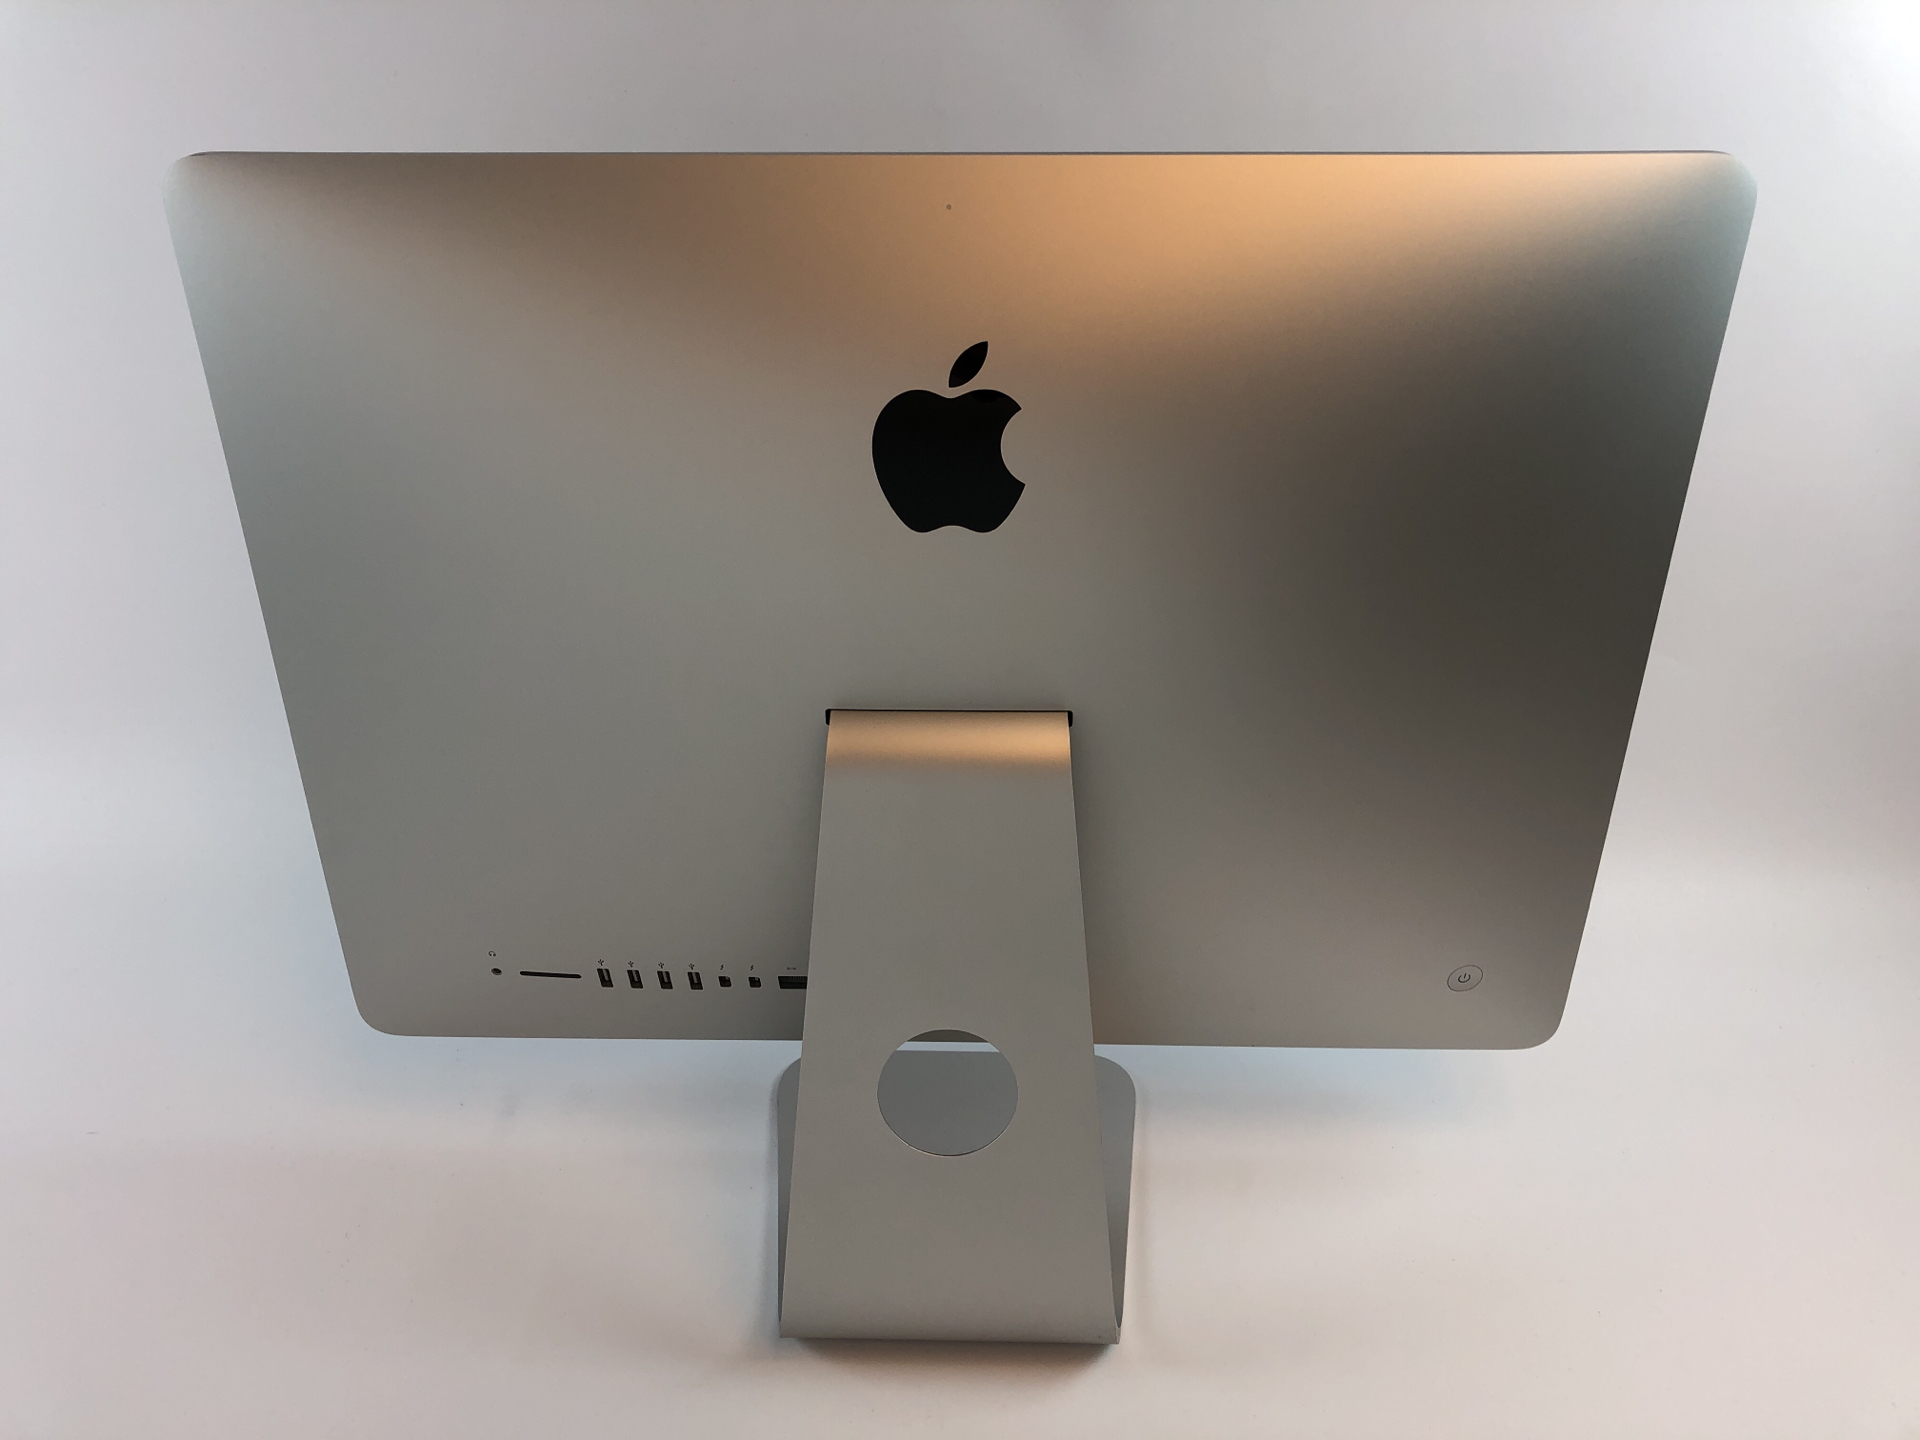 "iMac 21.5"" Late 2012 (Intel Quad-Core i5 2.9 GHz 8 GB RAM 1 TB HDD), Intel Quad-Core i5 2.9 GHz, 8 GB RAM, 1 TB HDD, Afbeelding 2"